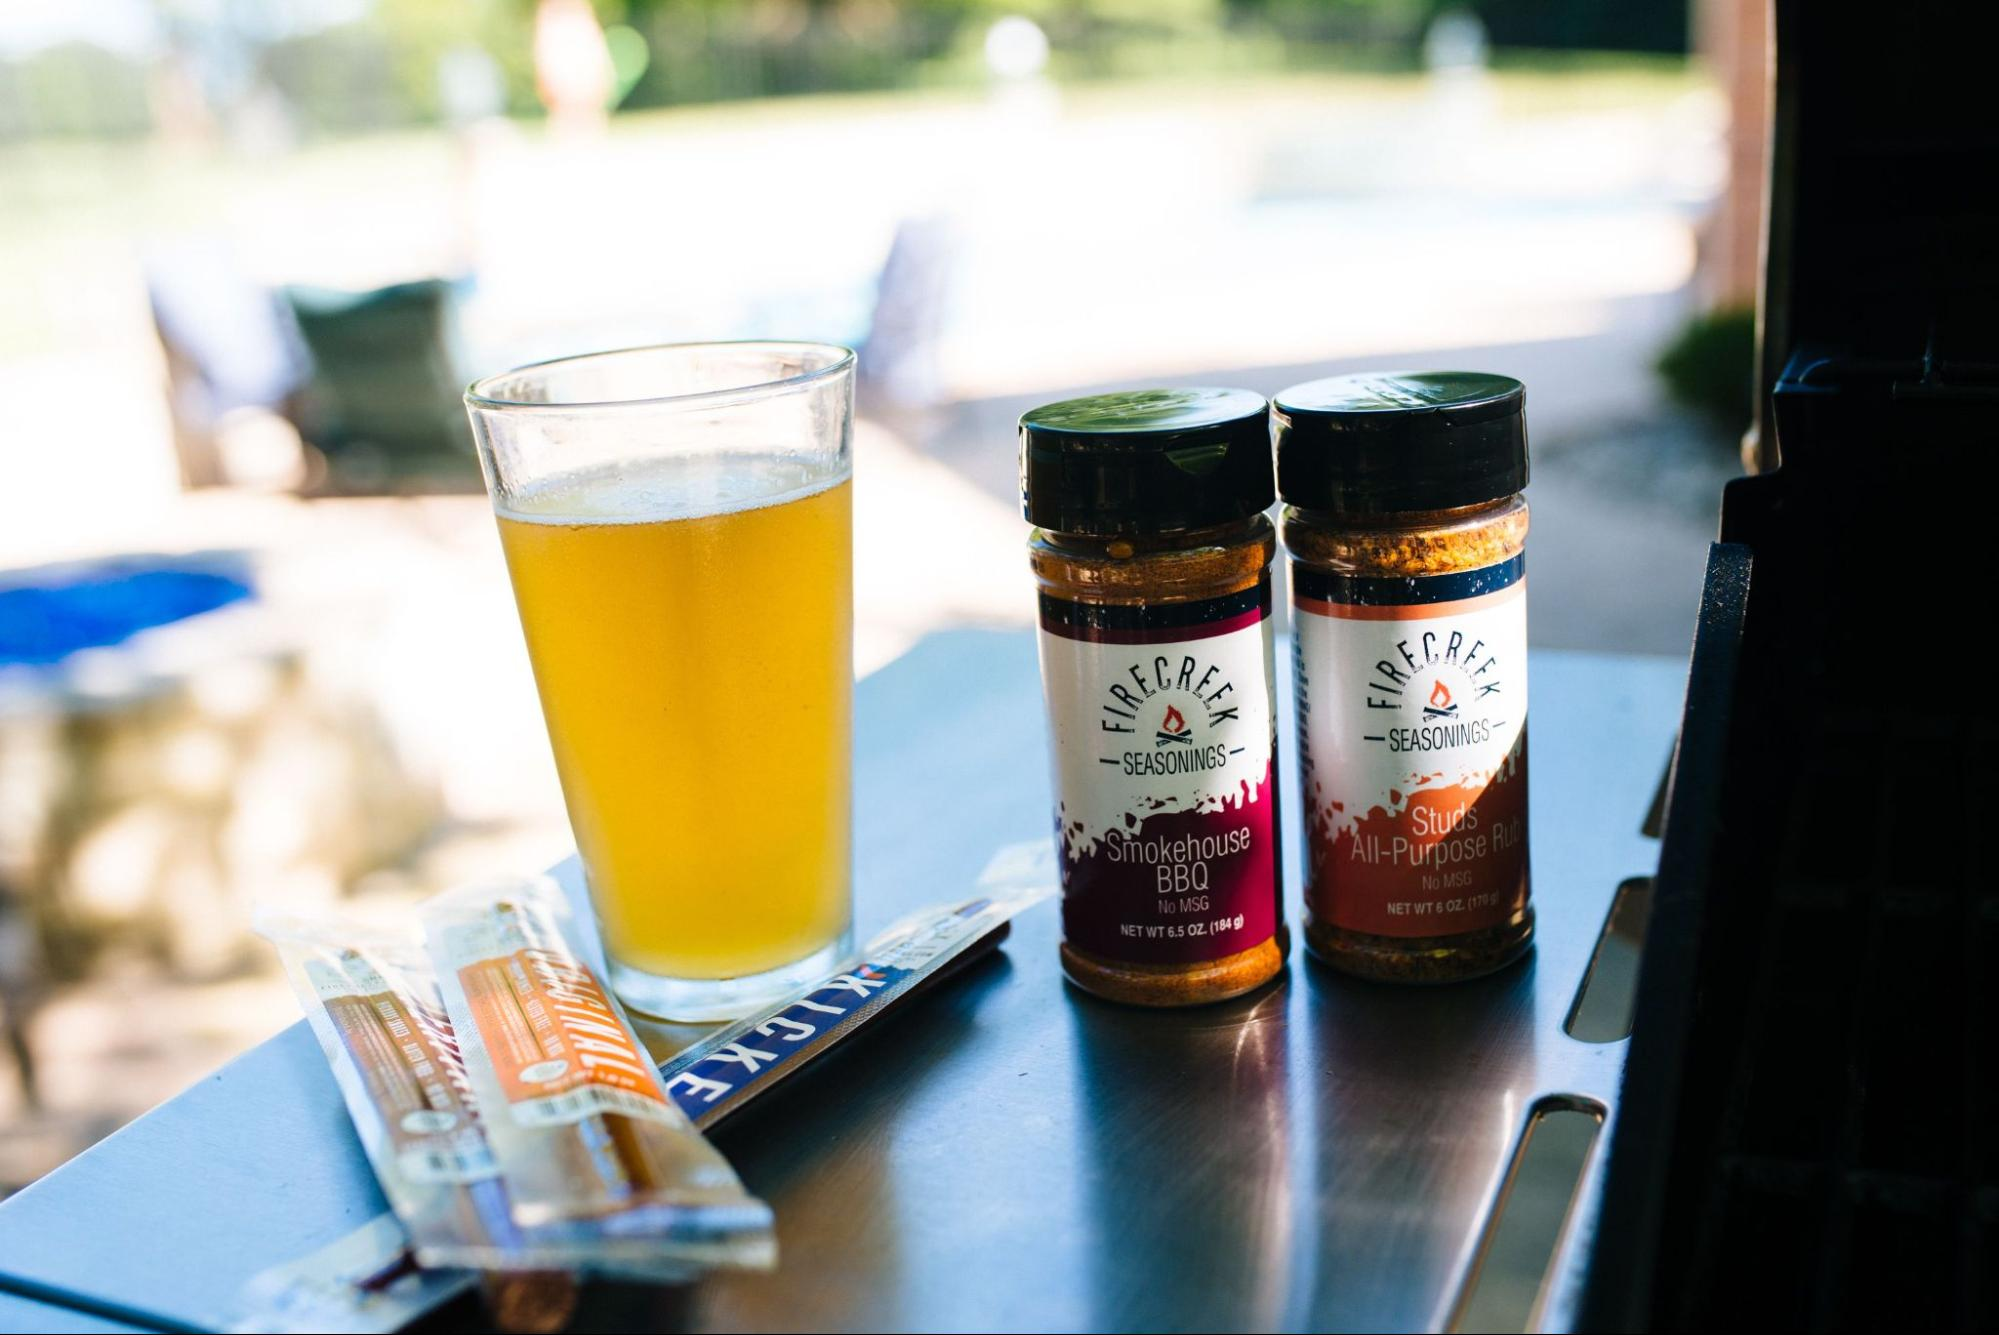 A duo of seasonings from FireCreek and some packs of jerky back dropped by a beverage.